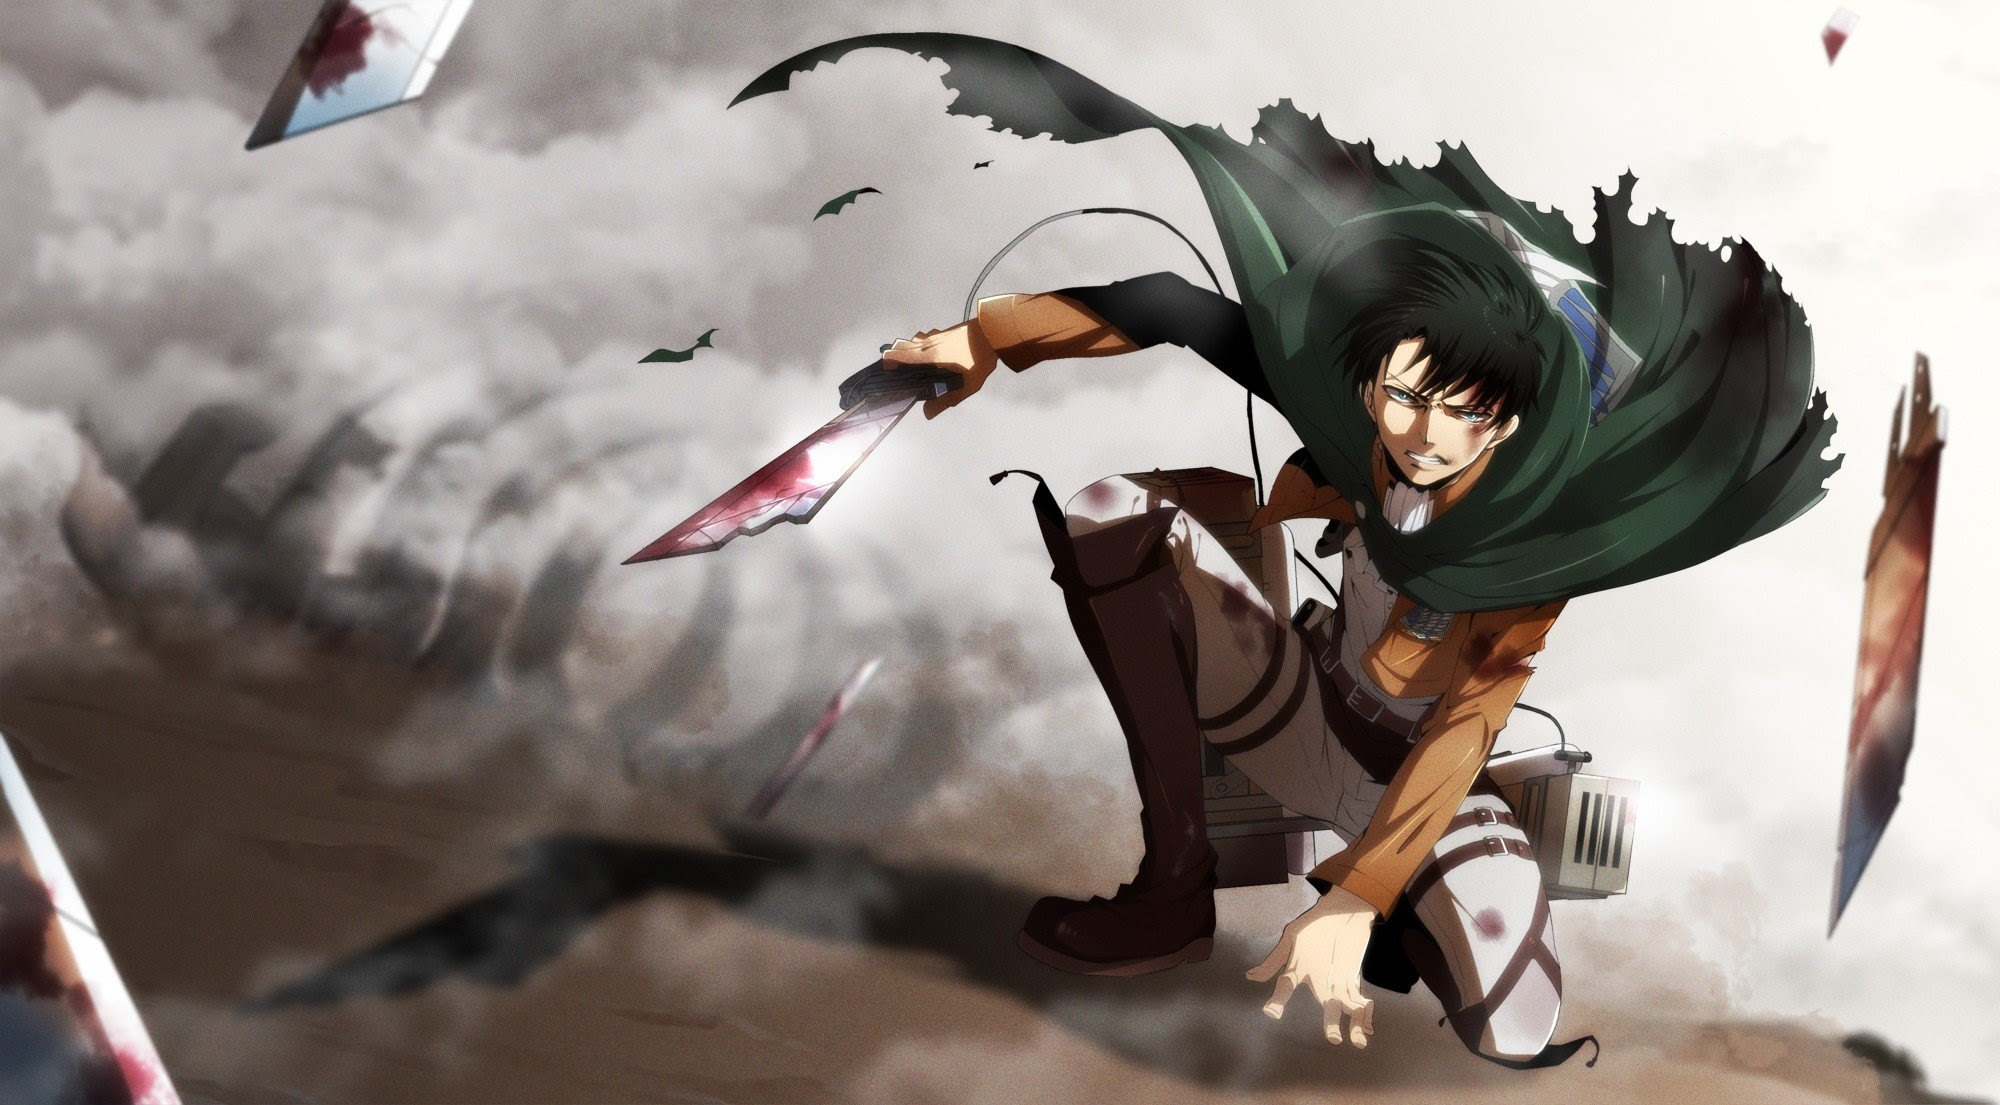 19 Wallpaper Desktop Anime Attack On Titan Anime Top Wallpaper